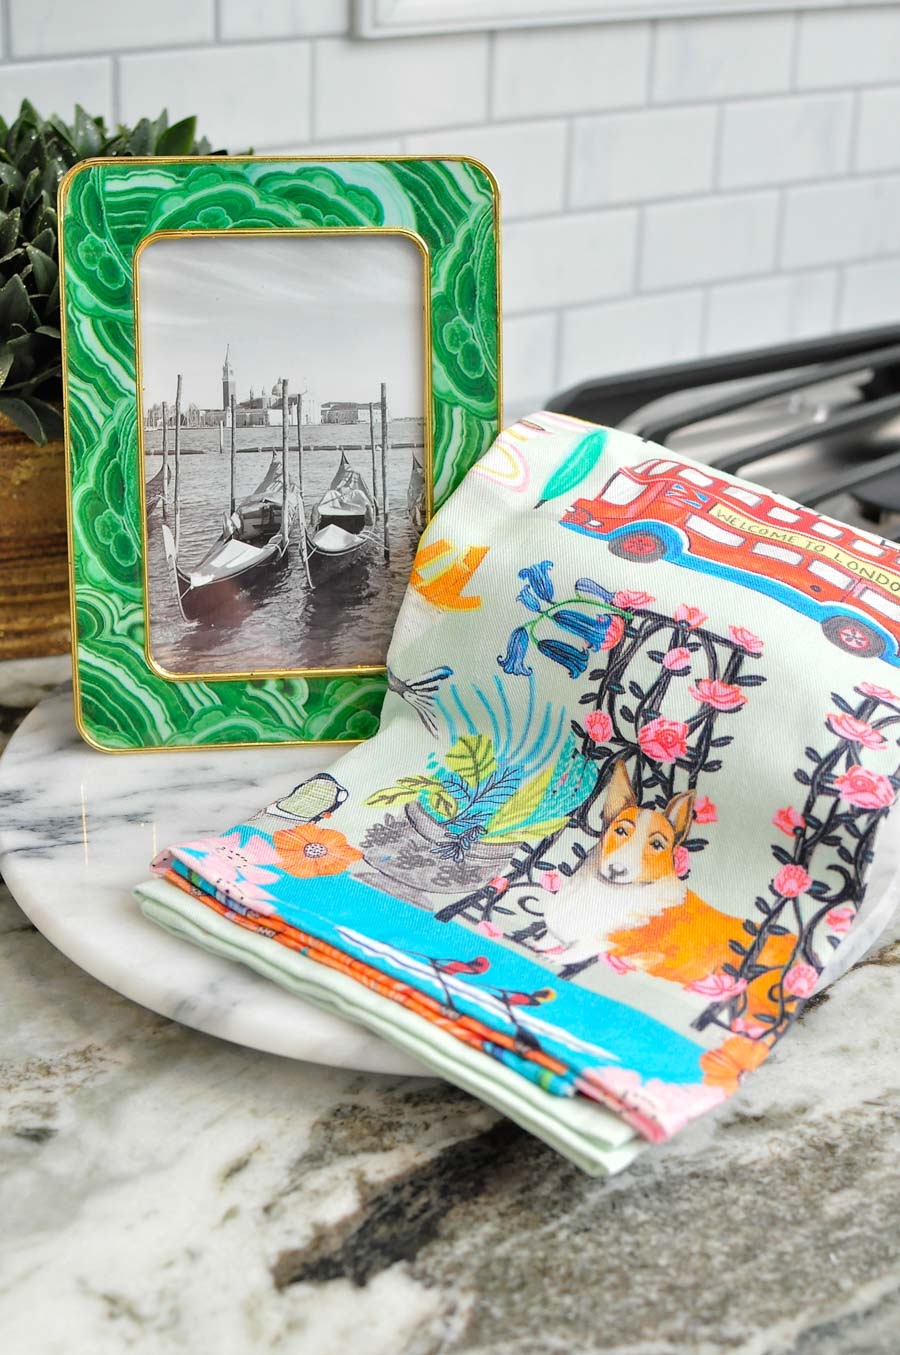 Agate picture frame and London kitchen towel from World Market.